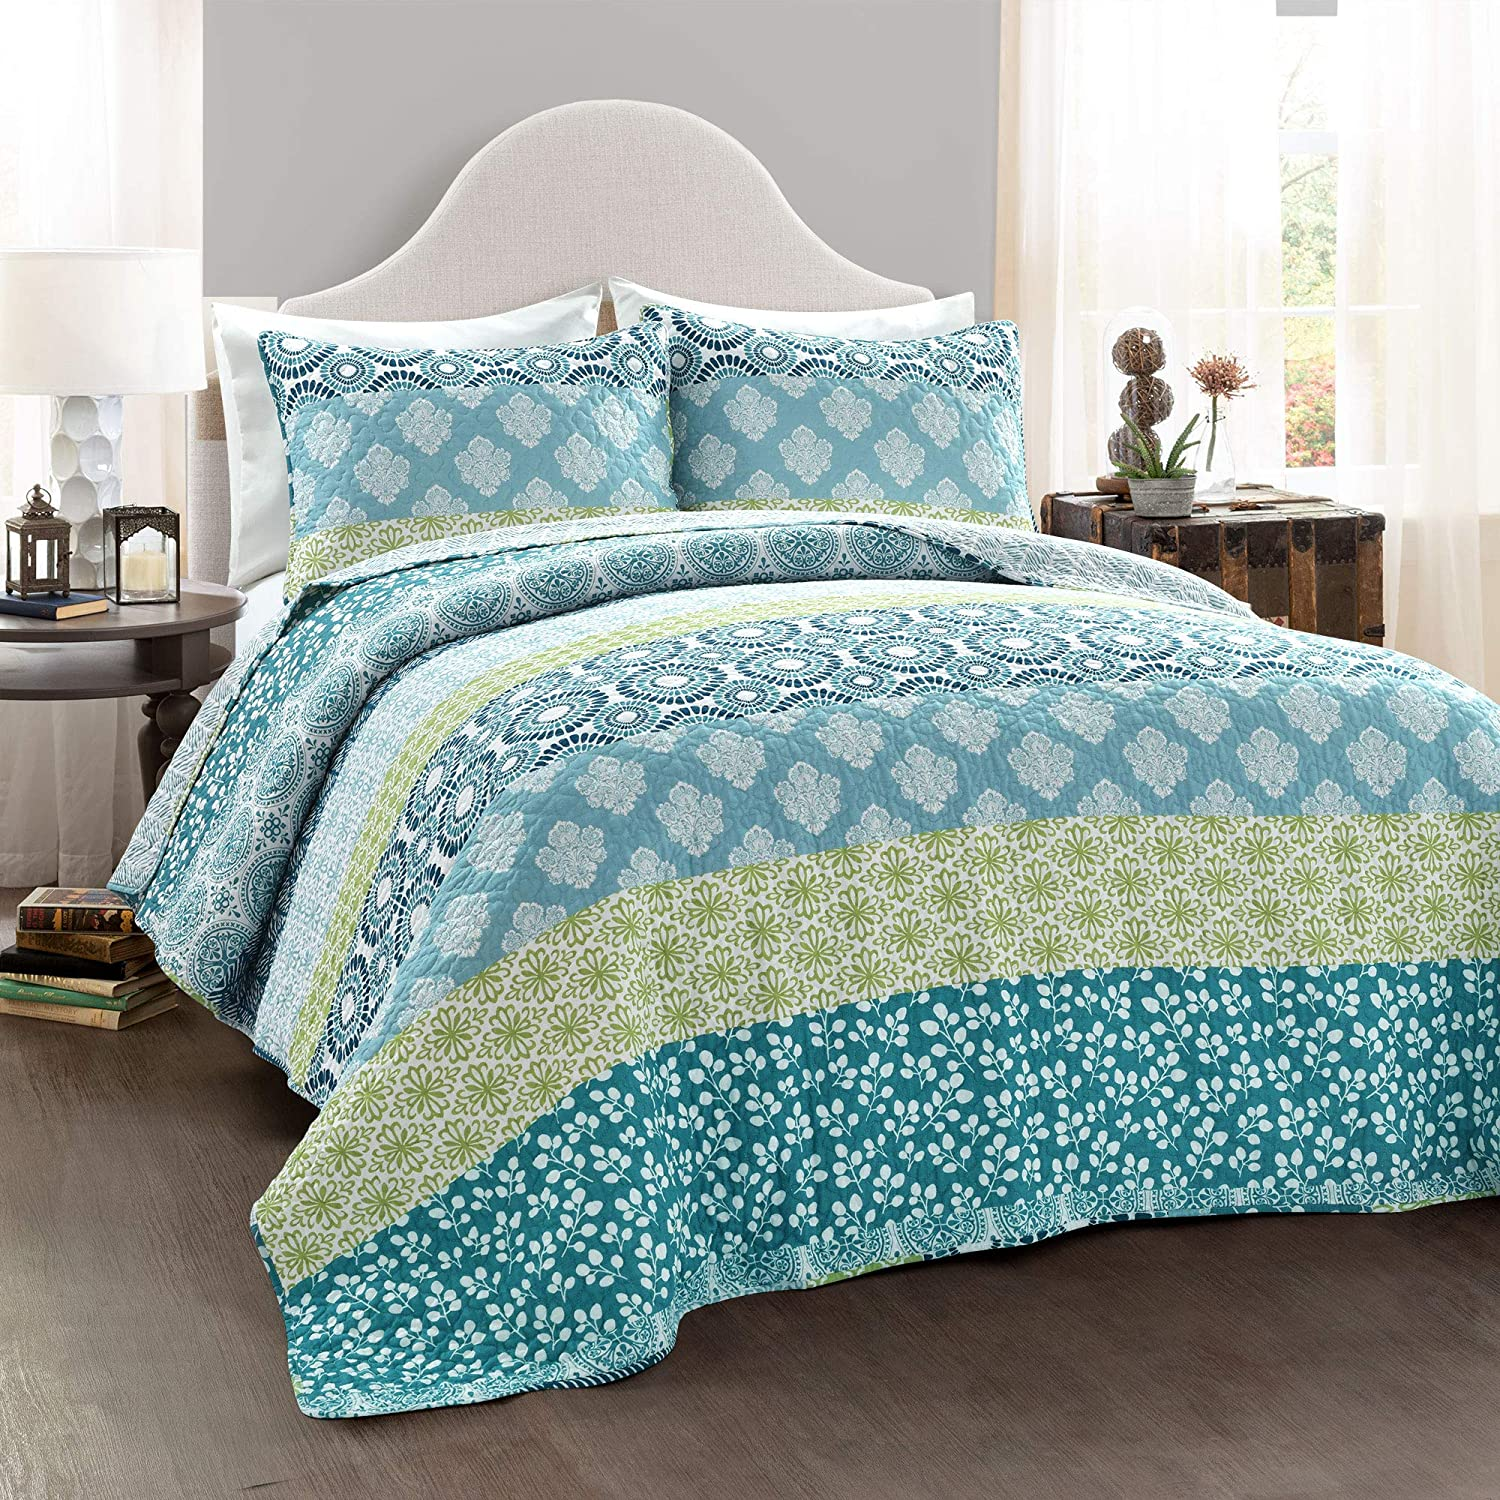 Lush Decor Bohemian Striped Quilt Reversible 3 Piece Bedding Set, King, Blue and Green